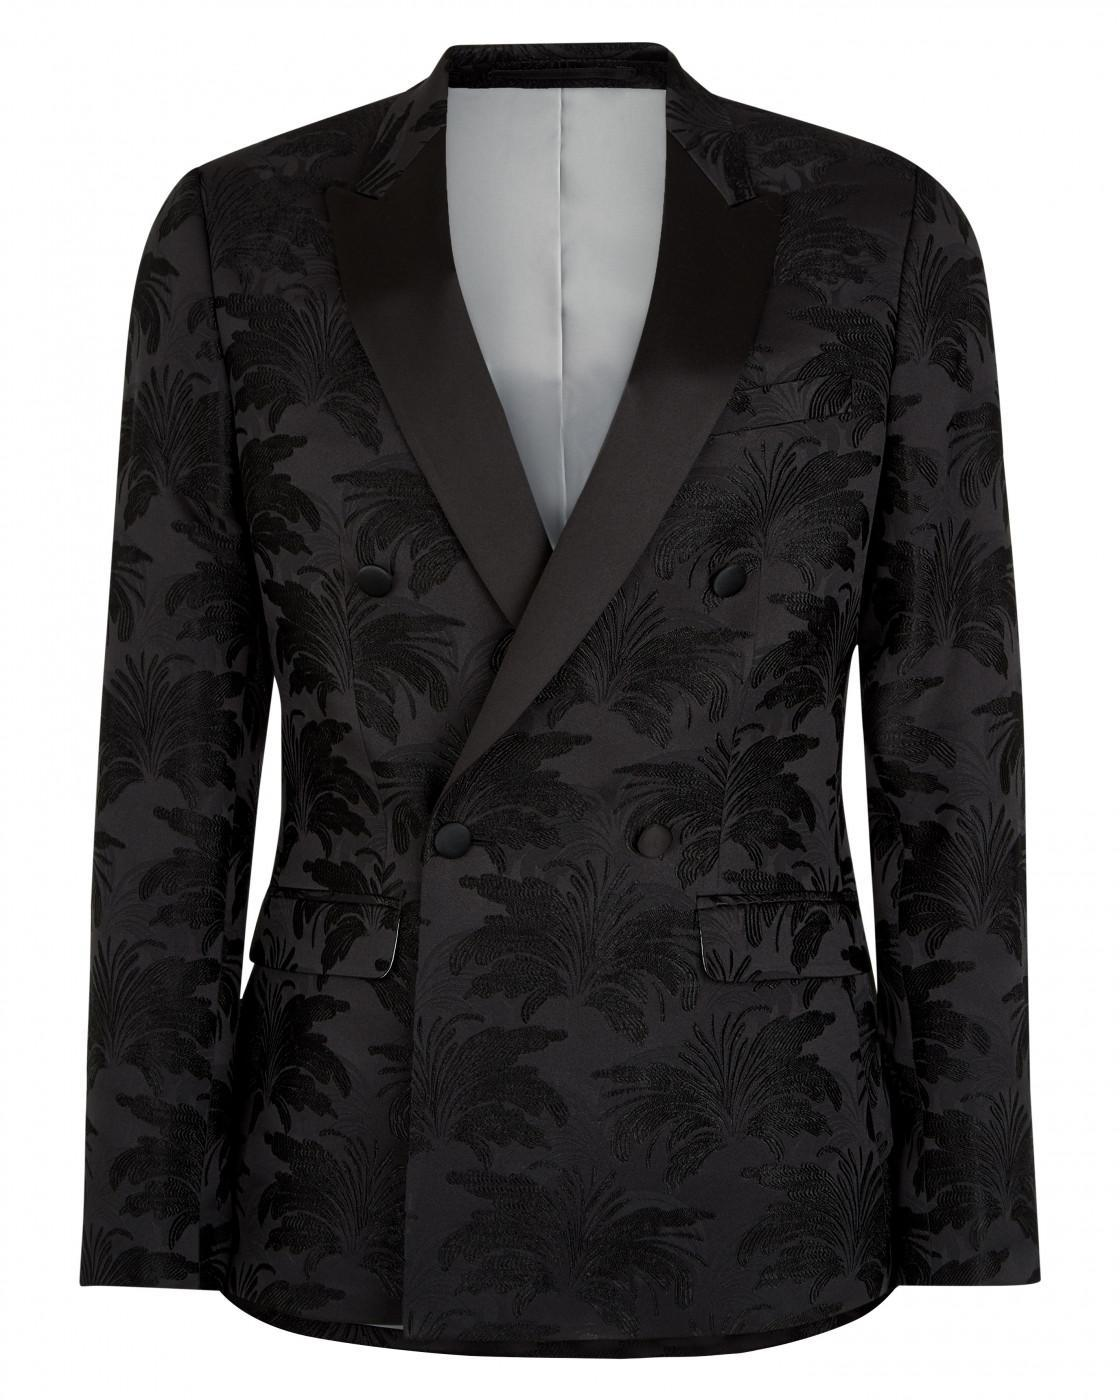 Skinny Floral Jacquard Suit Jacket By Austin Reed Thread